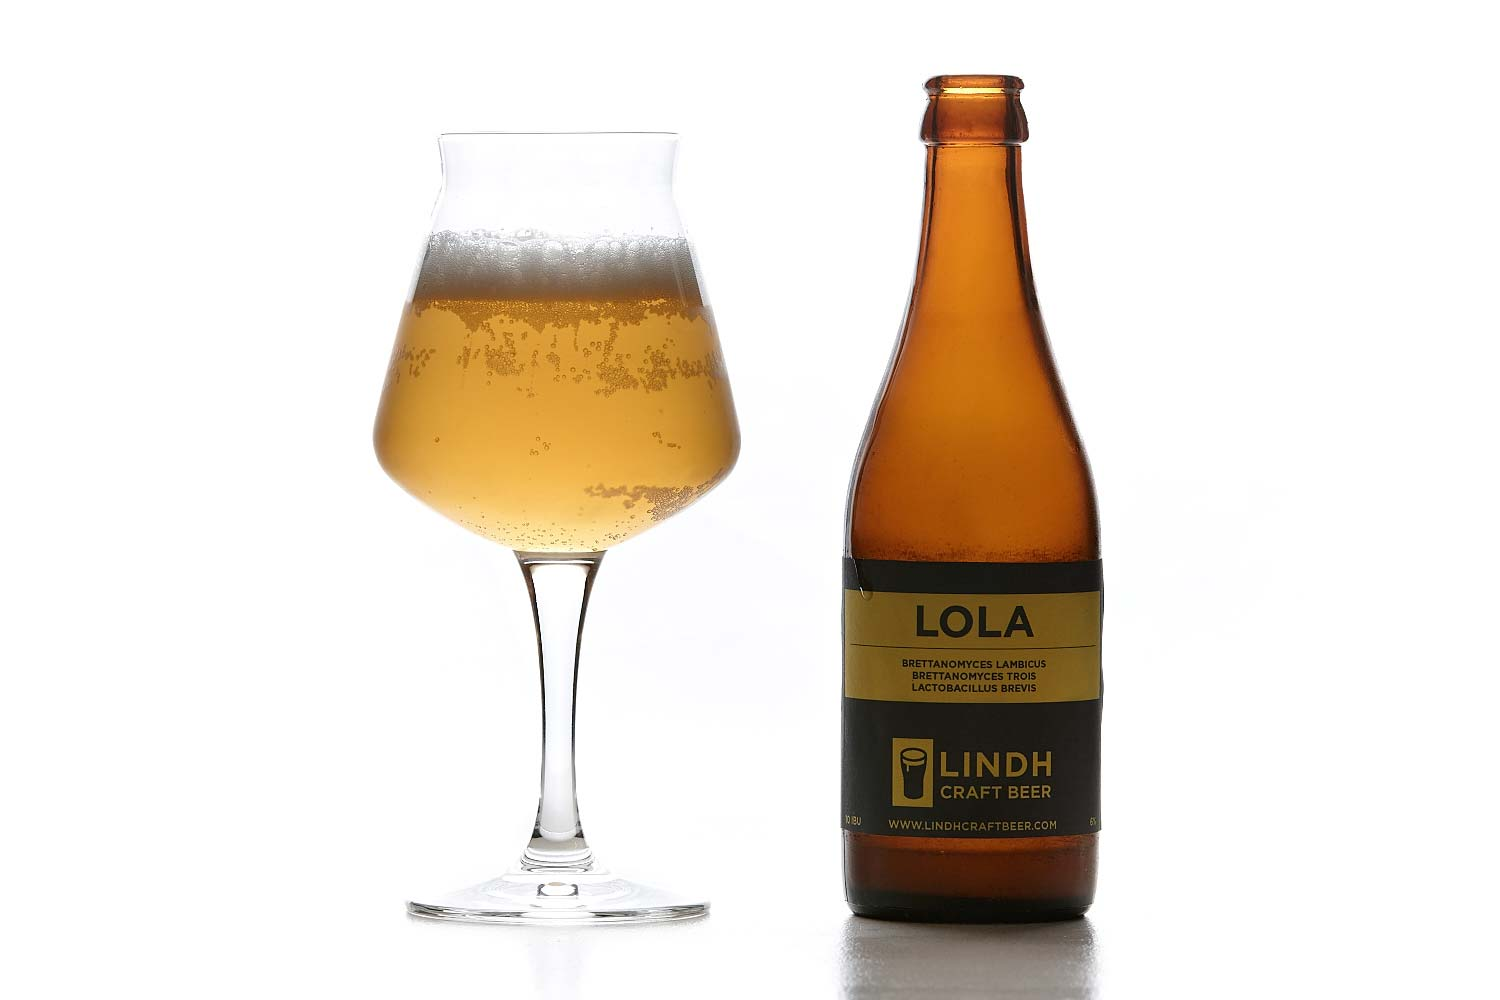 150712_lindh_craft_beer_lola